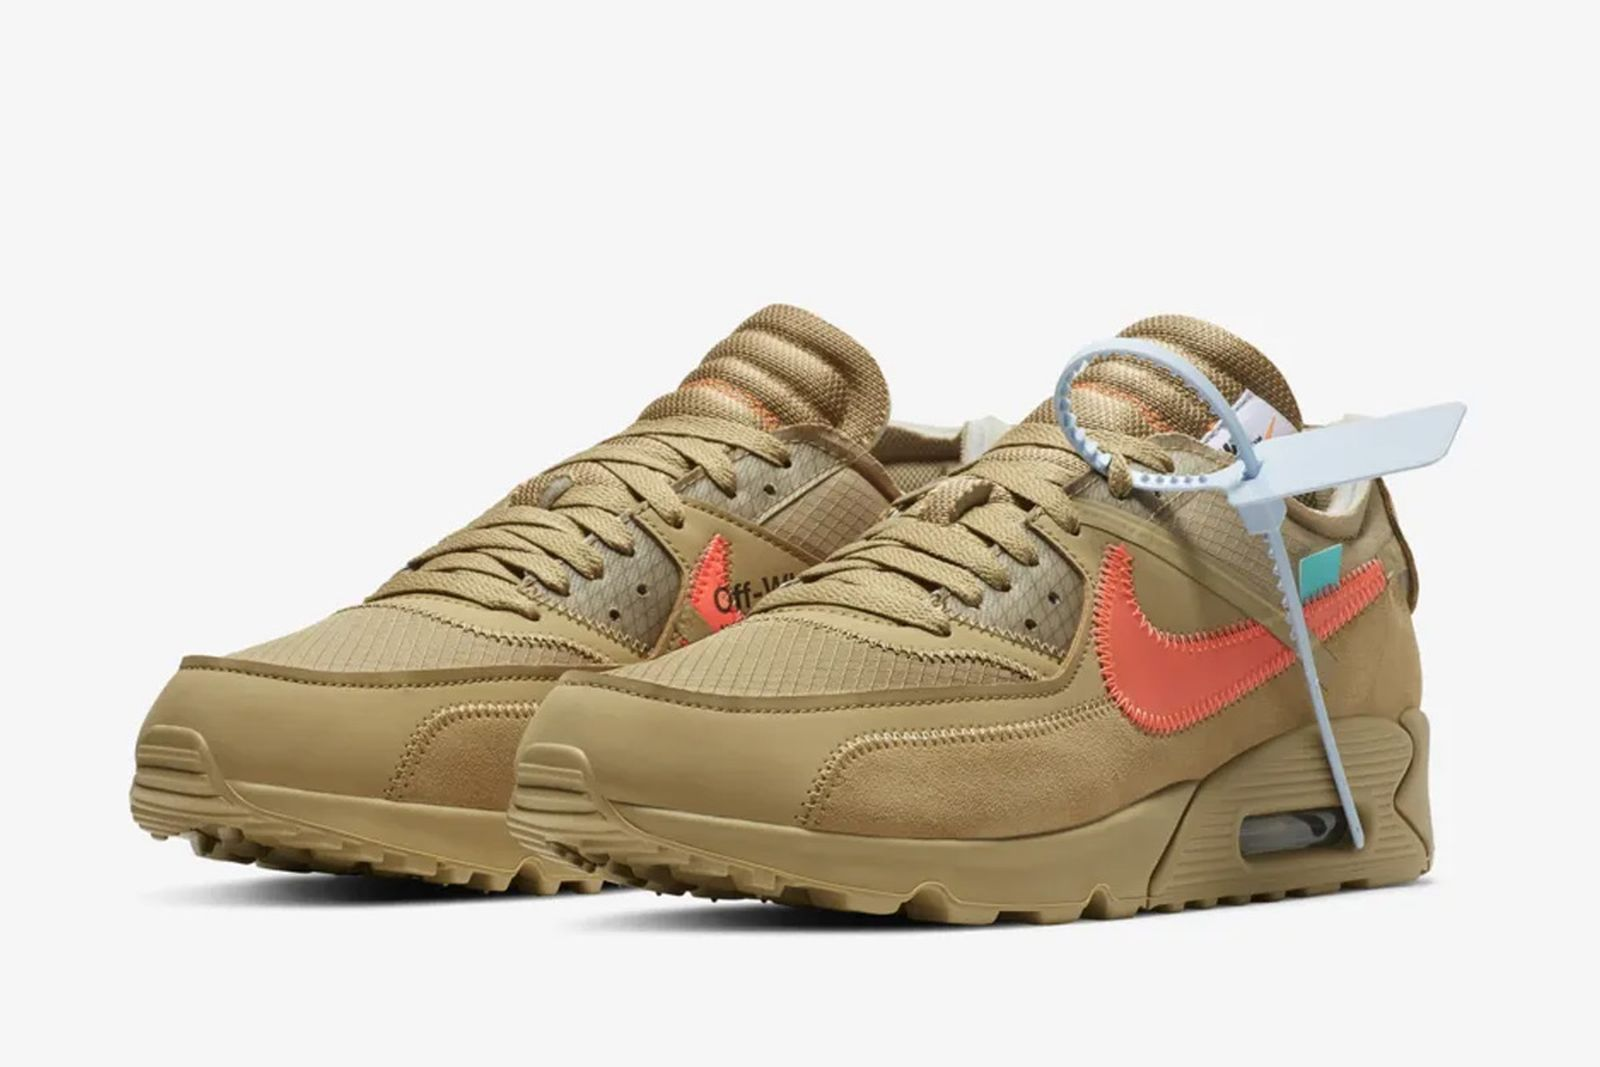 off white nike air max 90 2019 release date price product OFF-WHITE c/o Virgil Abloh